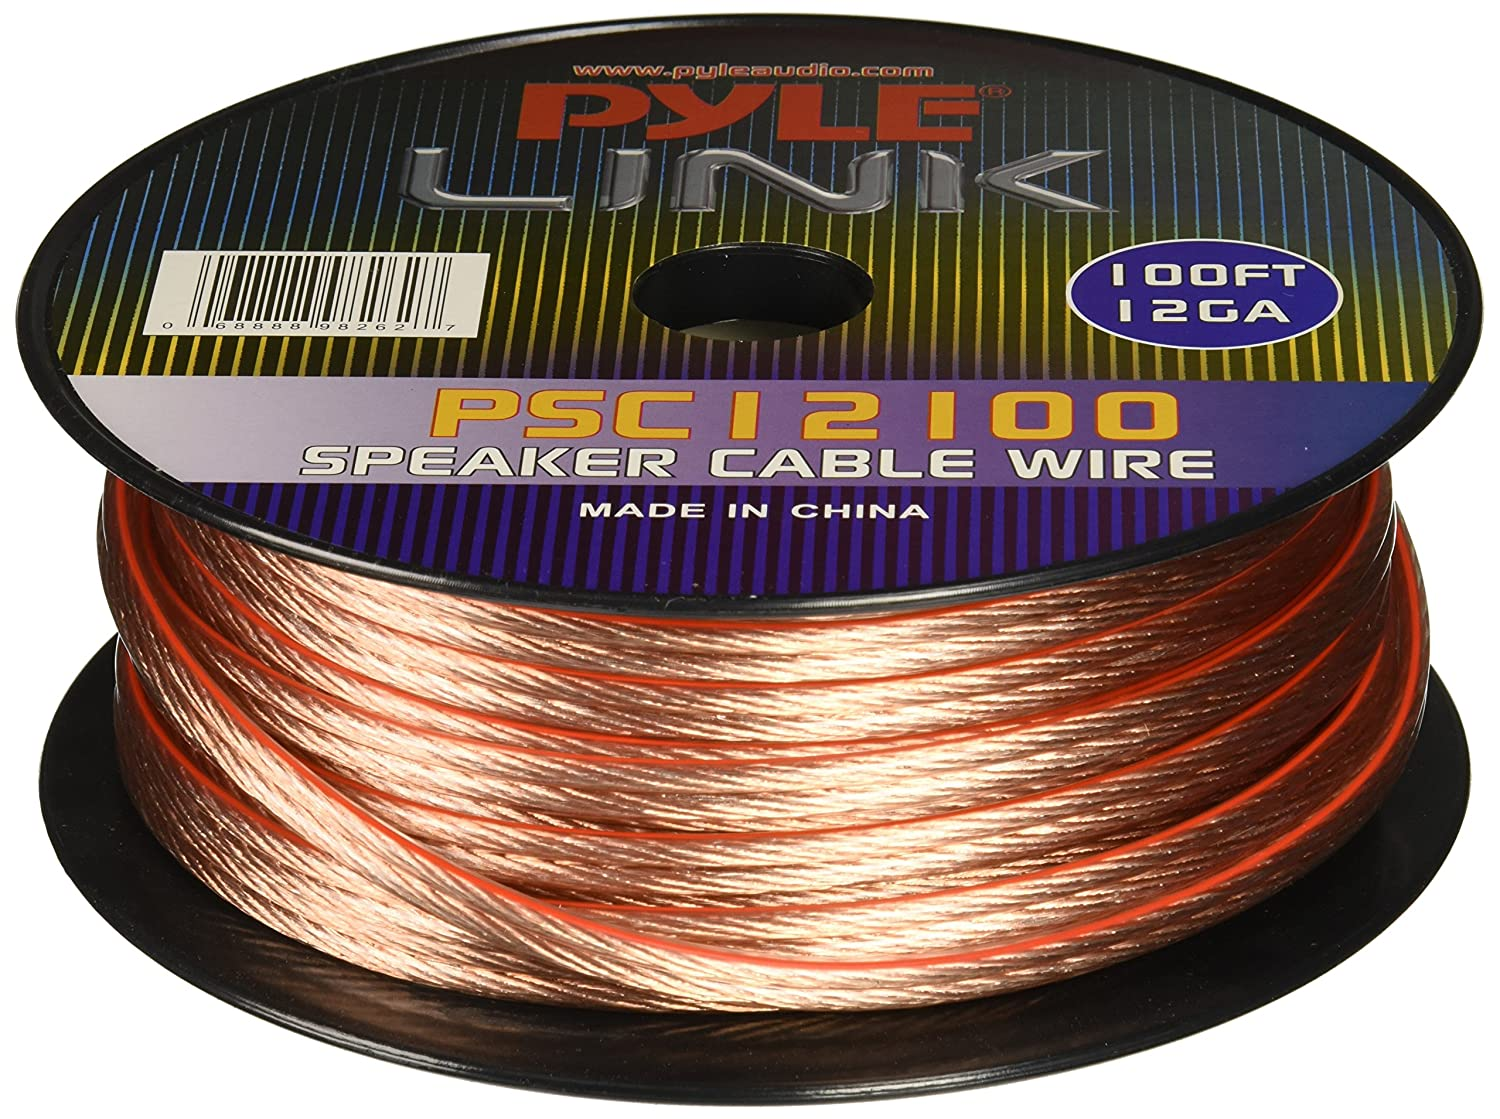 Amazon pyle psc12100 12 gauge 100 feet speaker wire home audio amazon pyle psc12100 12 gauge 100 feet speaker wire home audio theater keyboard keysfo Choice Image